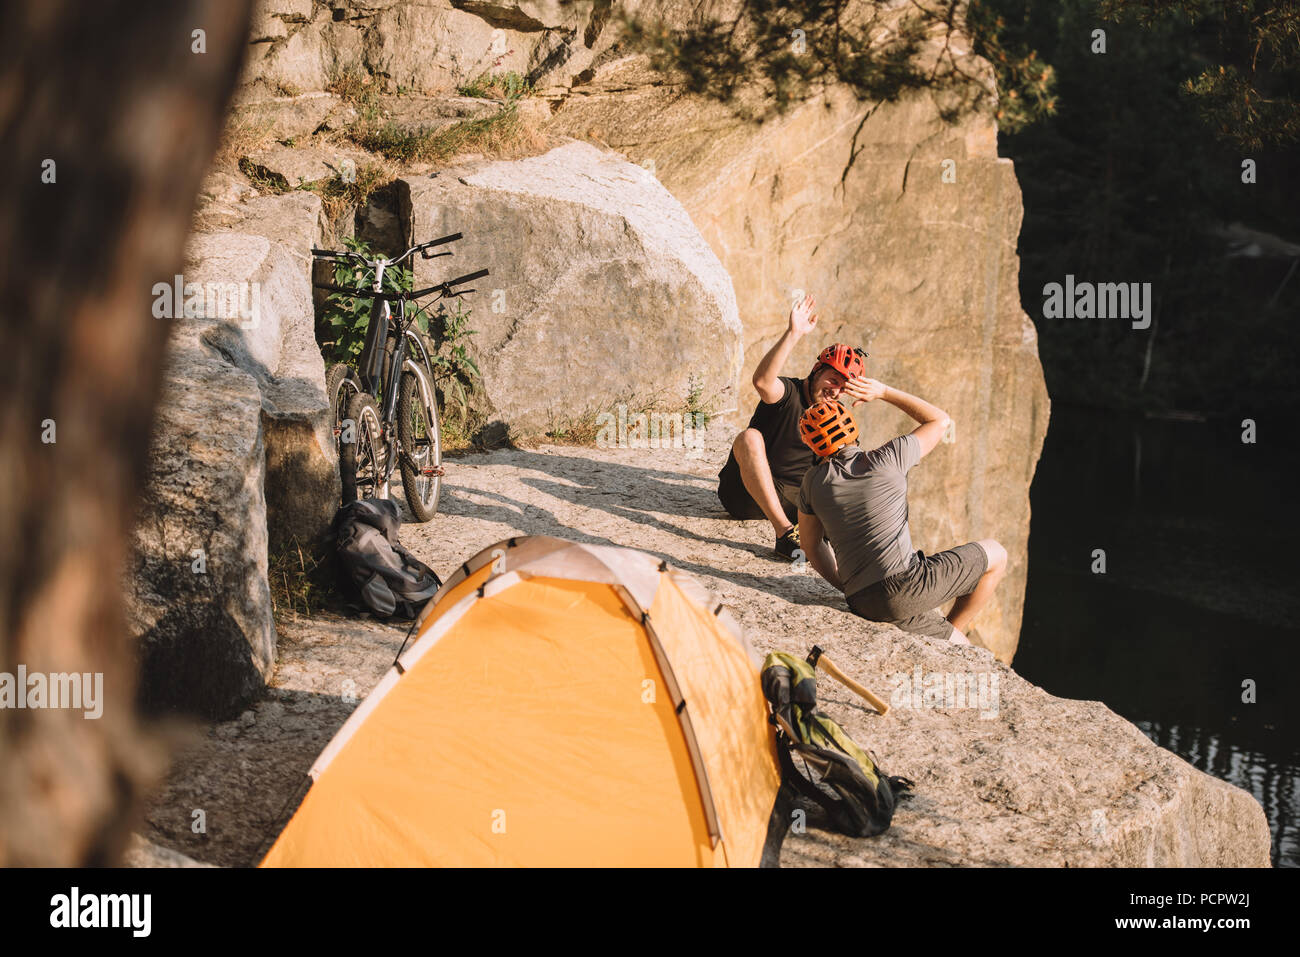 high angle view of active trial bikers sitting on rocky cliff with camping tent and giving high five - Stock Image